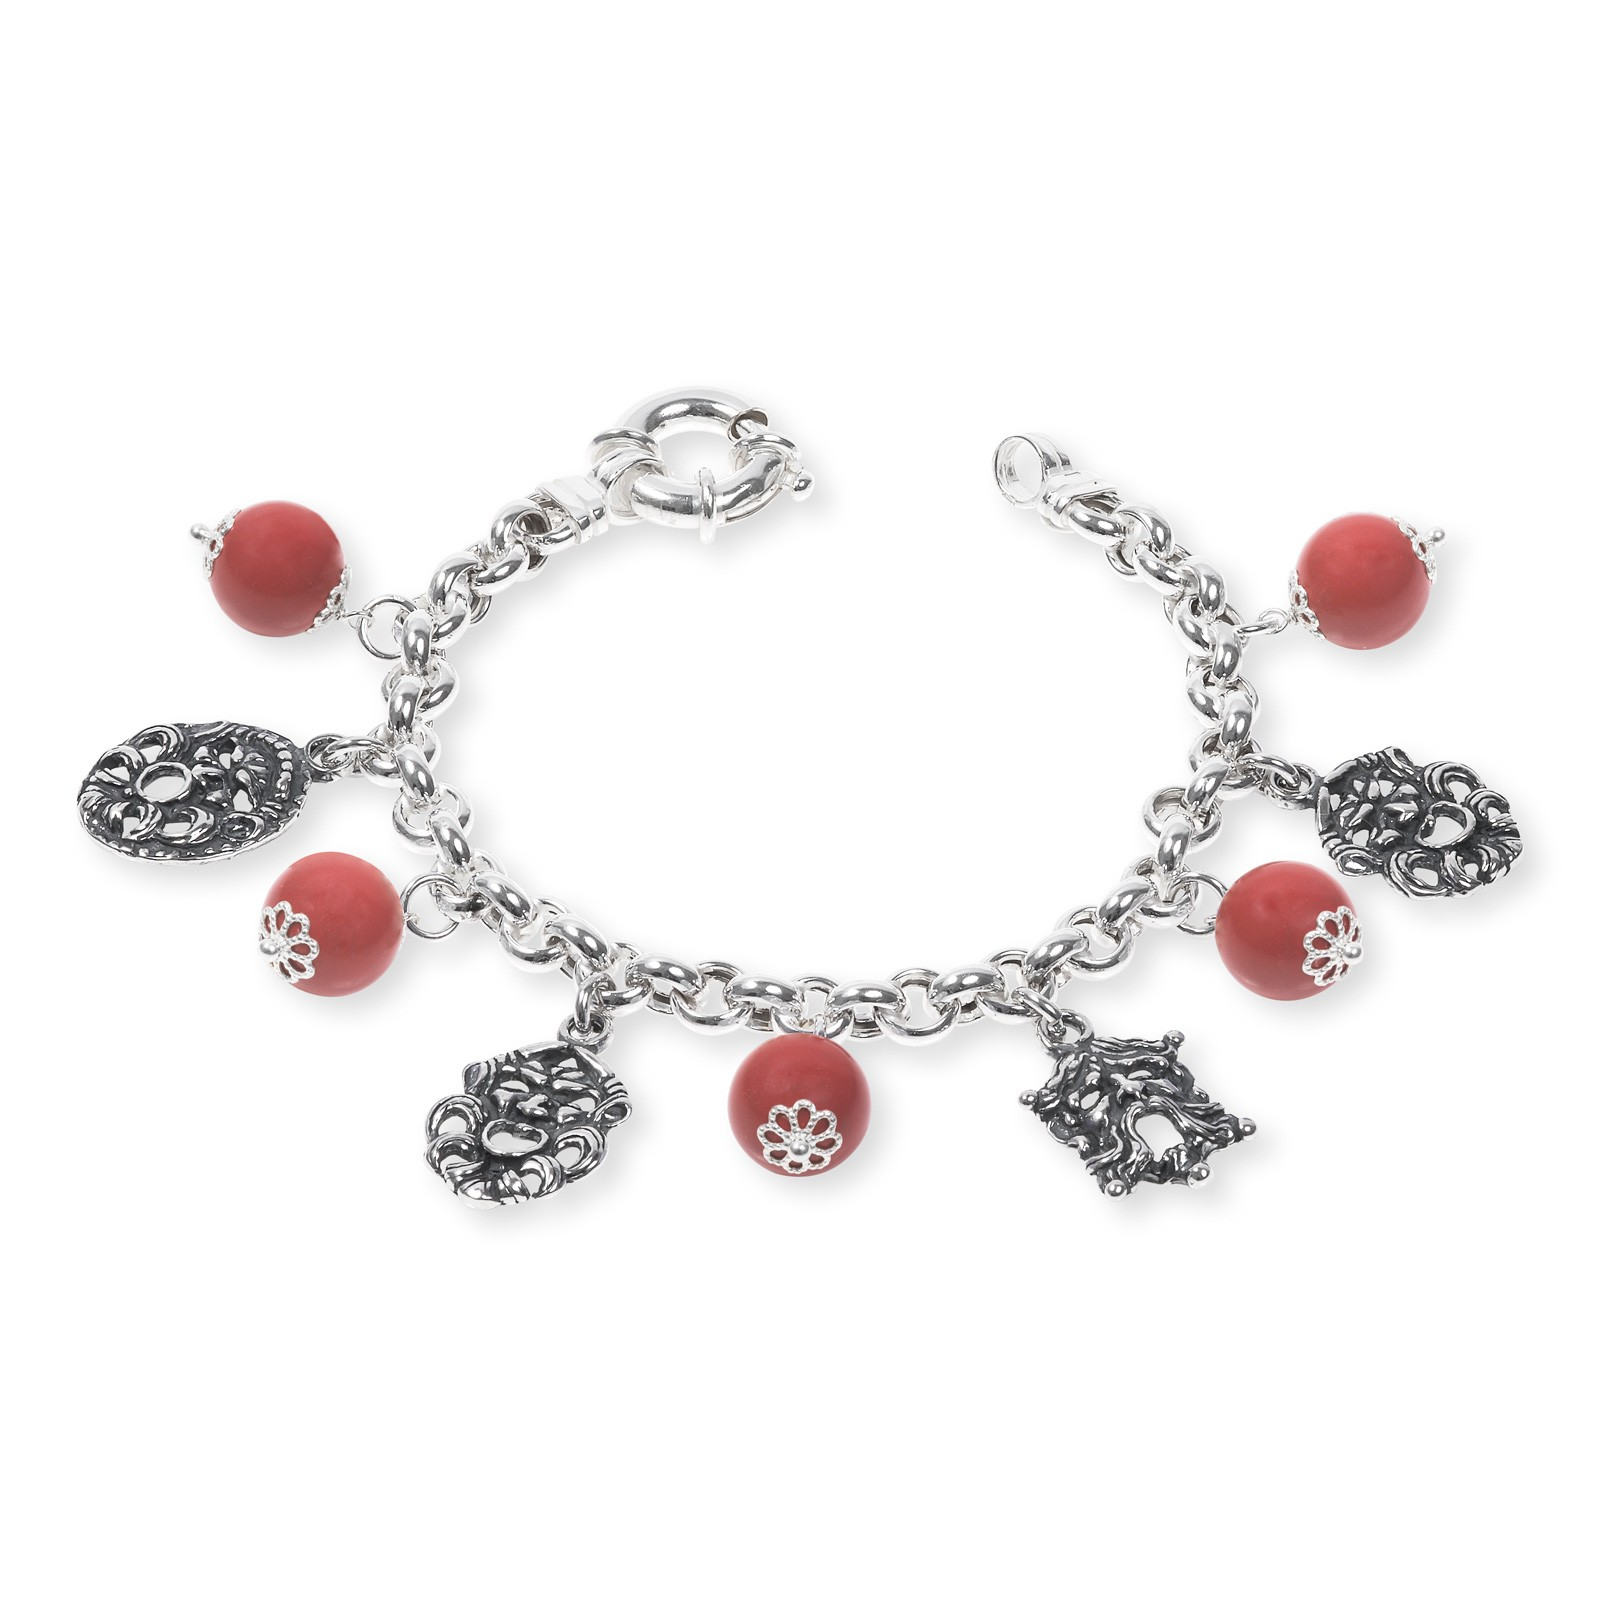 Silver Bracelet with colored stones and Masks (33687)